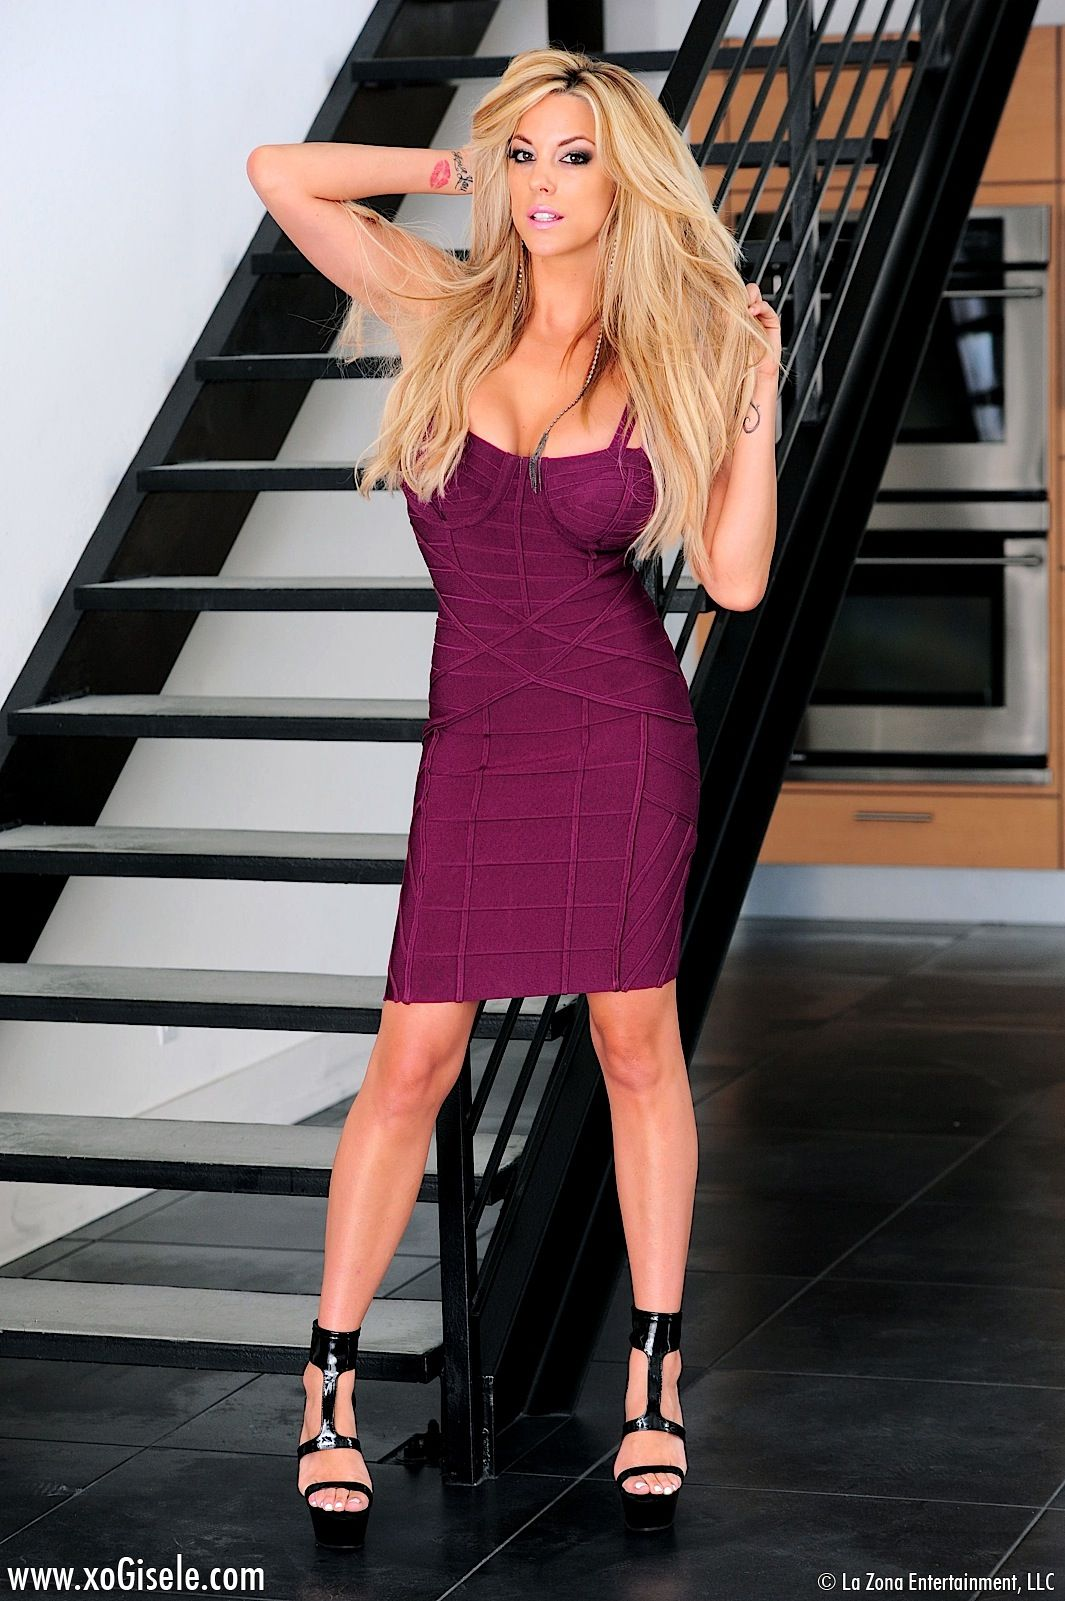 Gisele Is Stunning In Figure Hugging Dress Spunky Babes